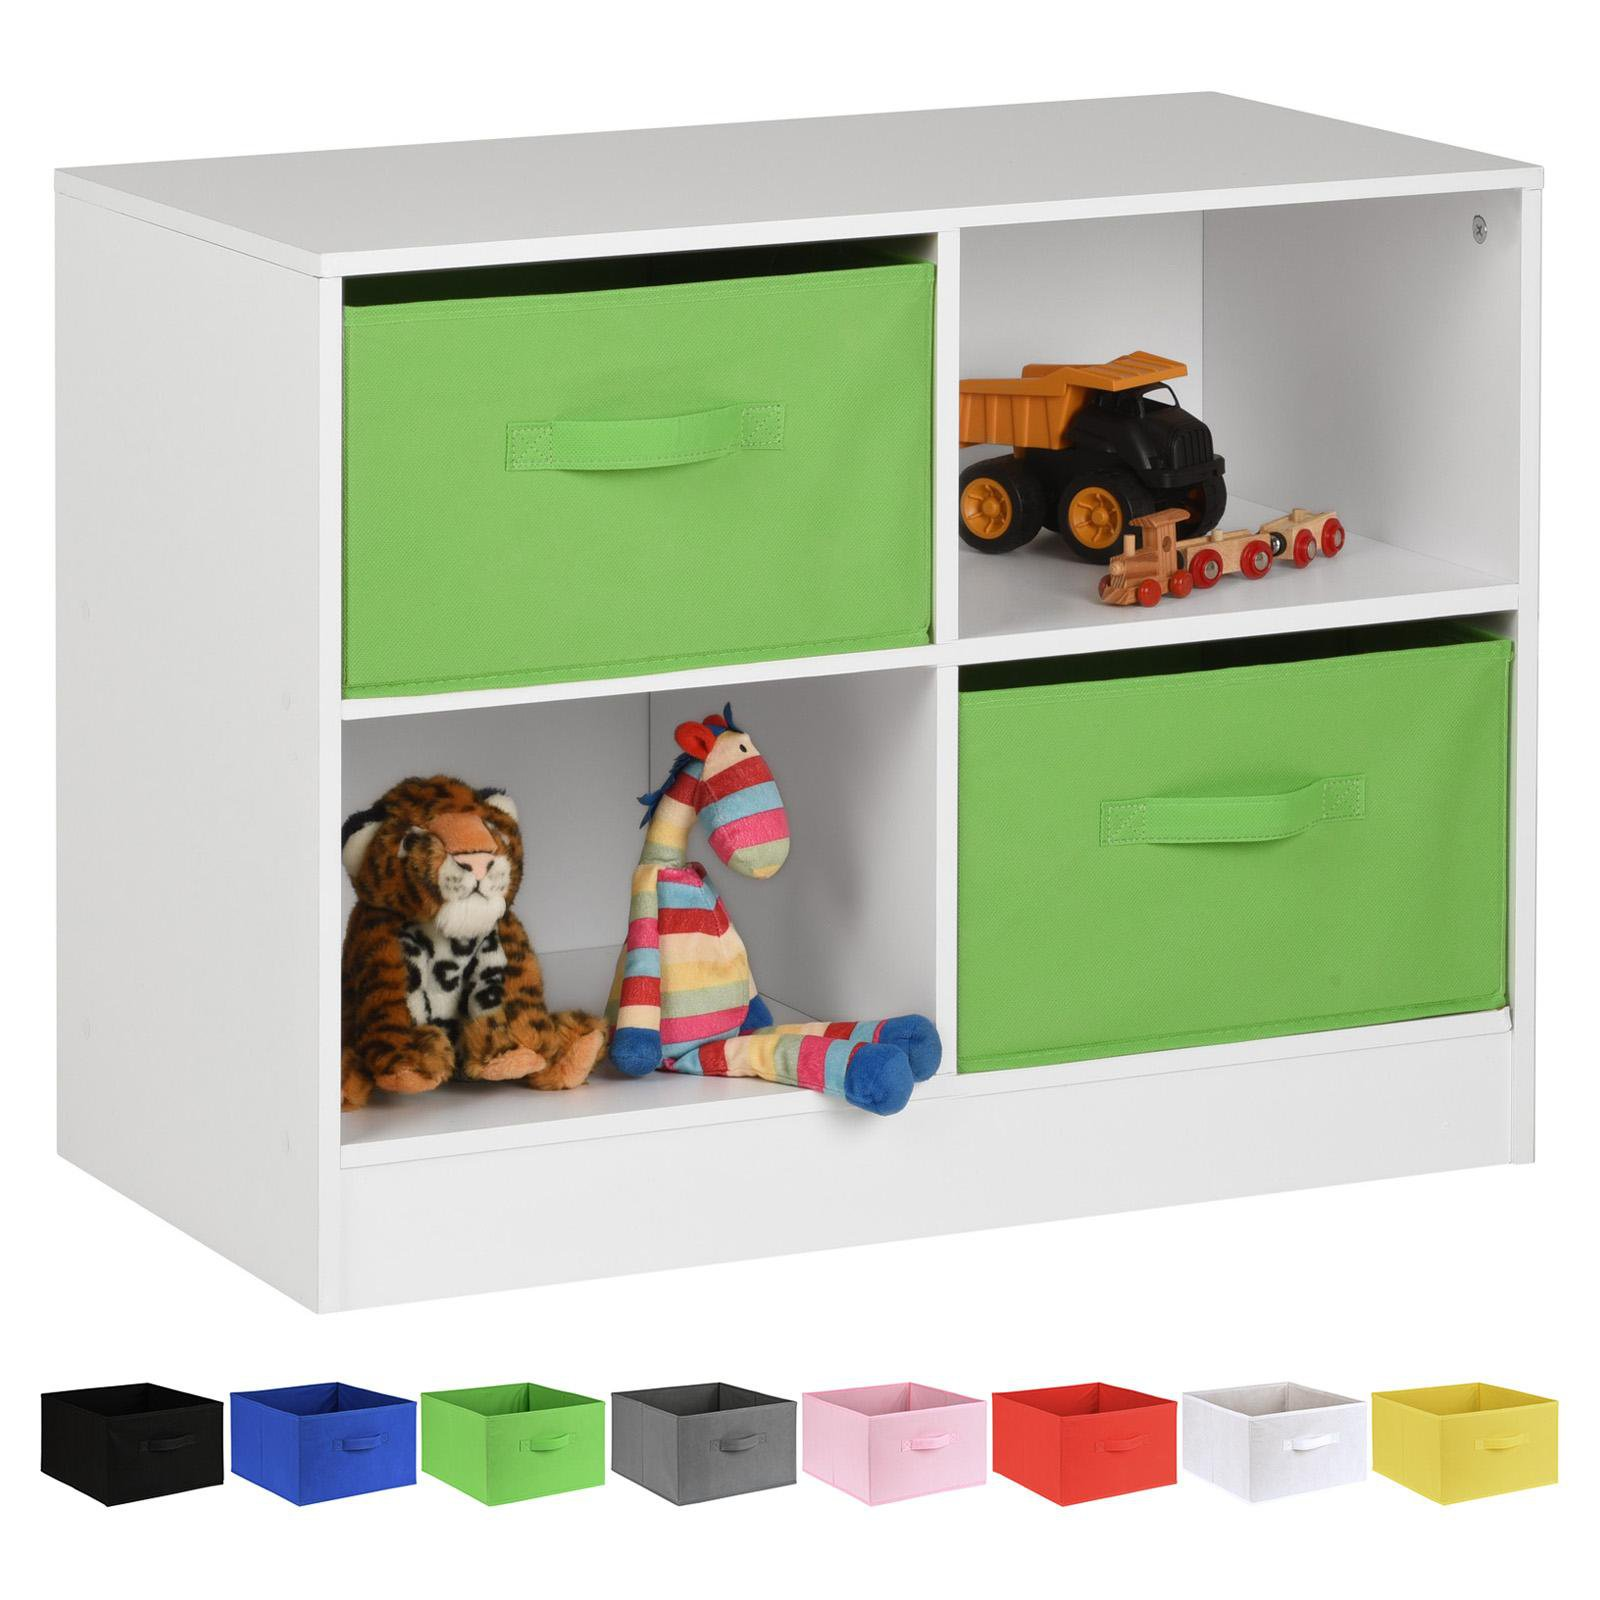 image-Hartleys White 4 Cube Kids Storage Unit & 2 Handled Box Drawers - Green